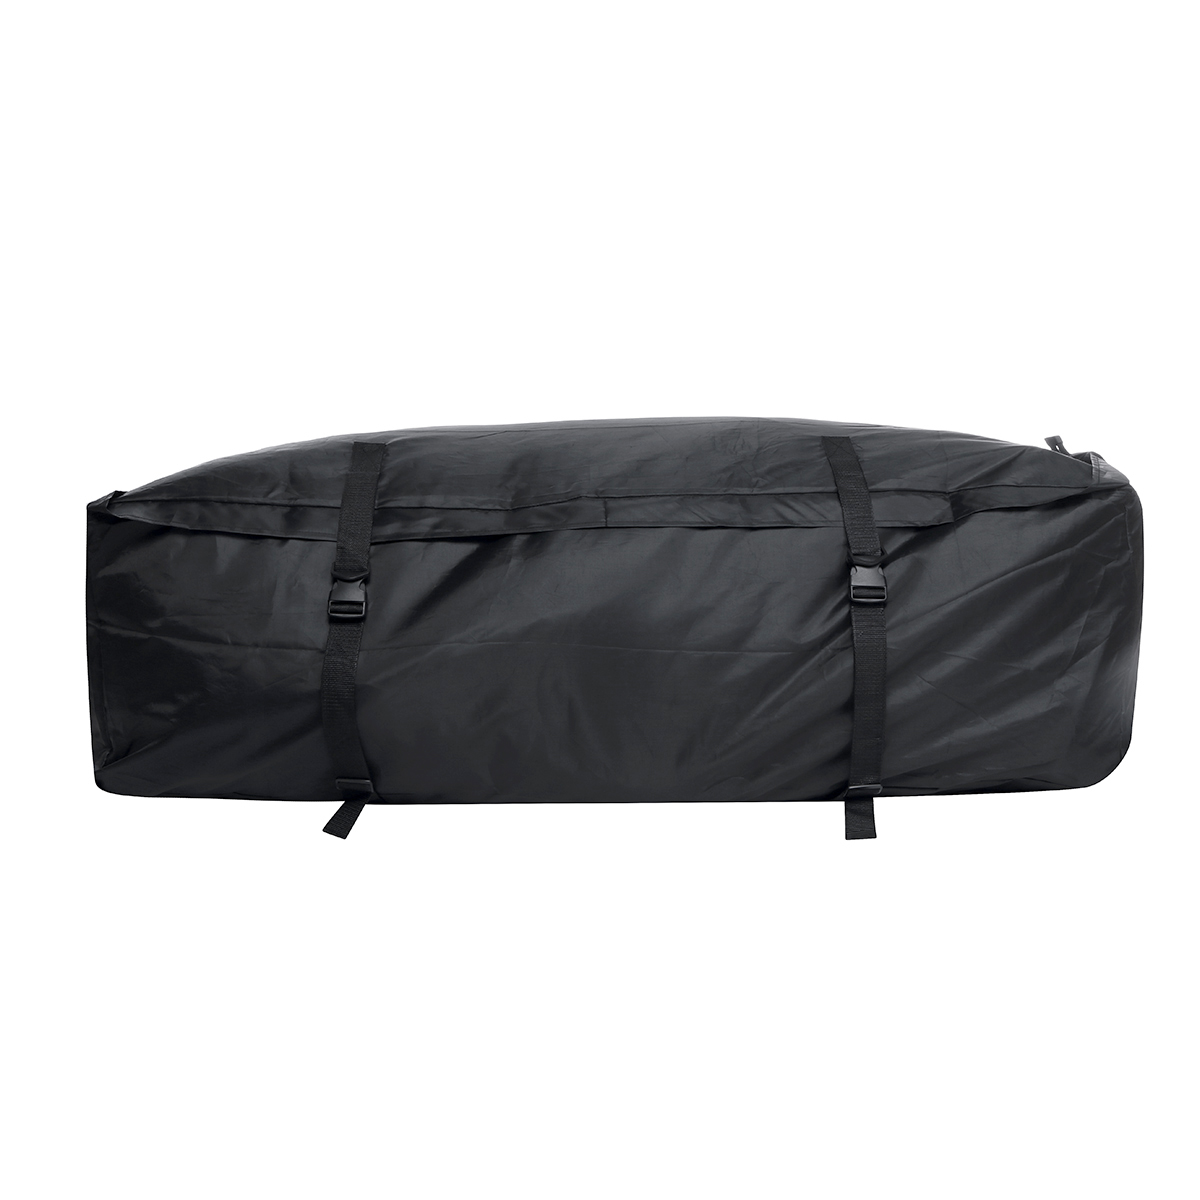 Oxford Cloth Car Roof Bag Travel Car Top Rack Bag Waterproof Luggage Cargo Carrier Bag Outdoor Camping